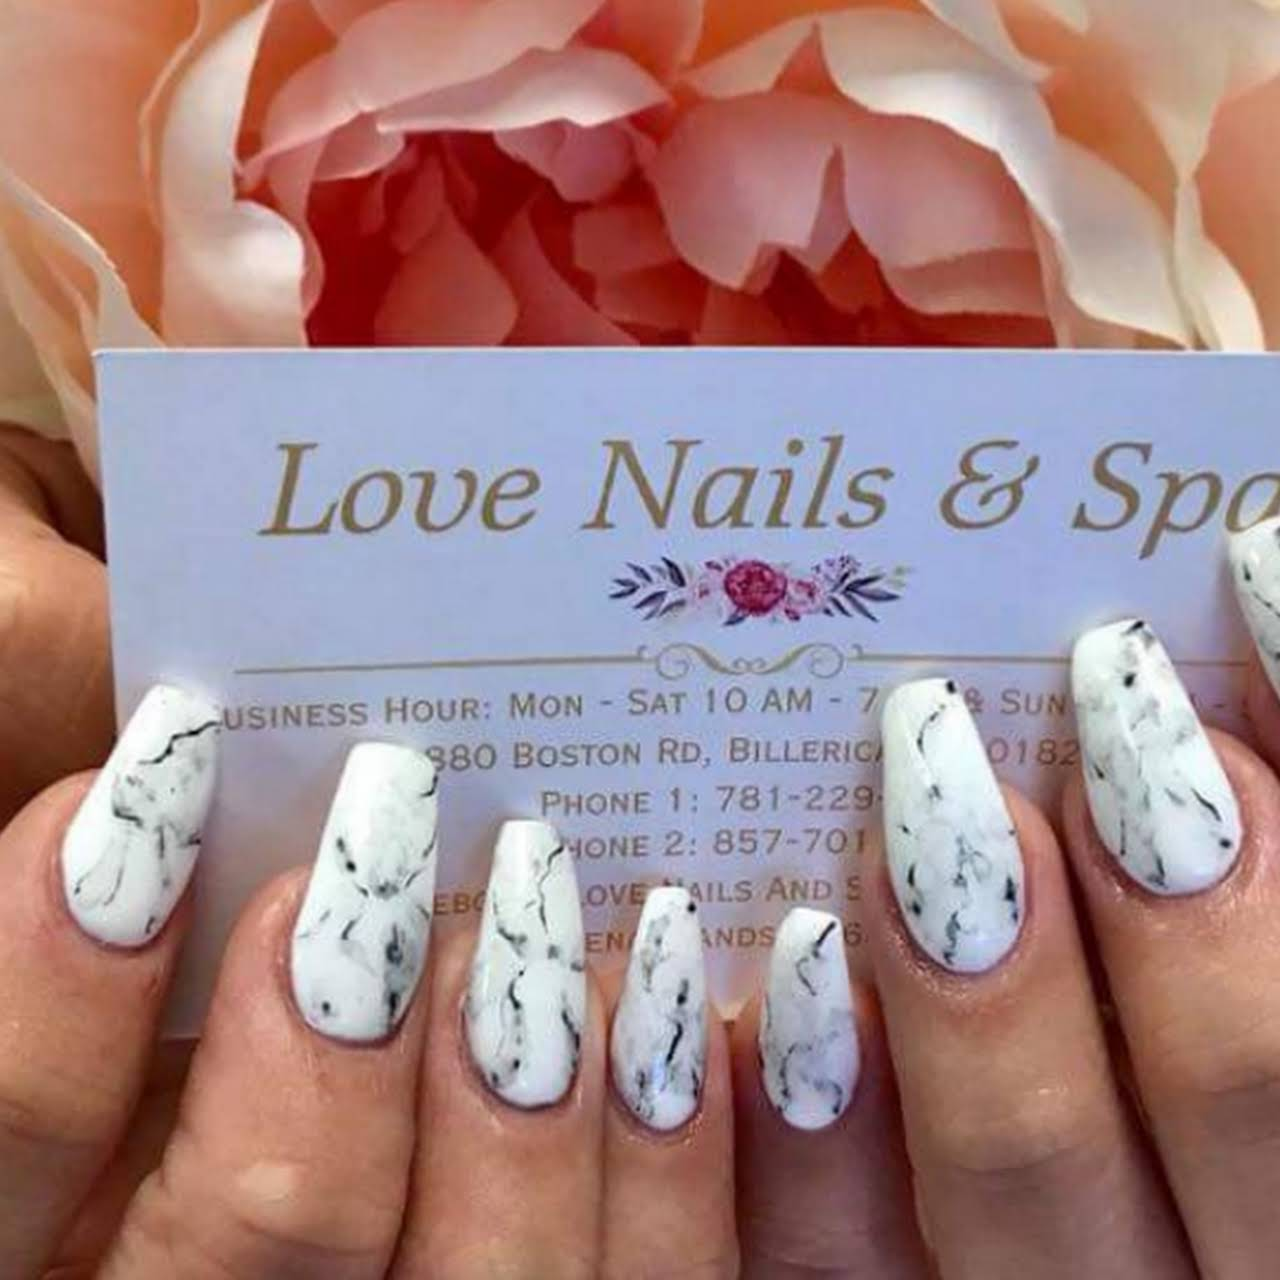 Love Nails And Spa Billerica - Best Nail ImageBrain.Co